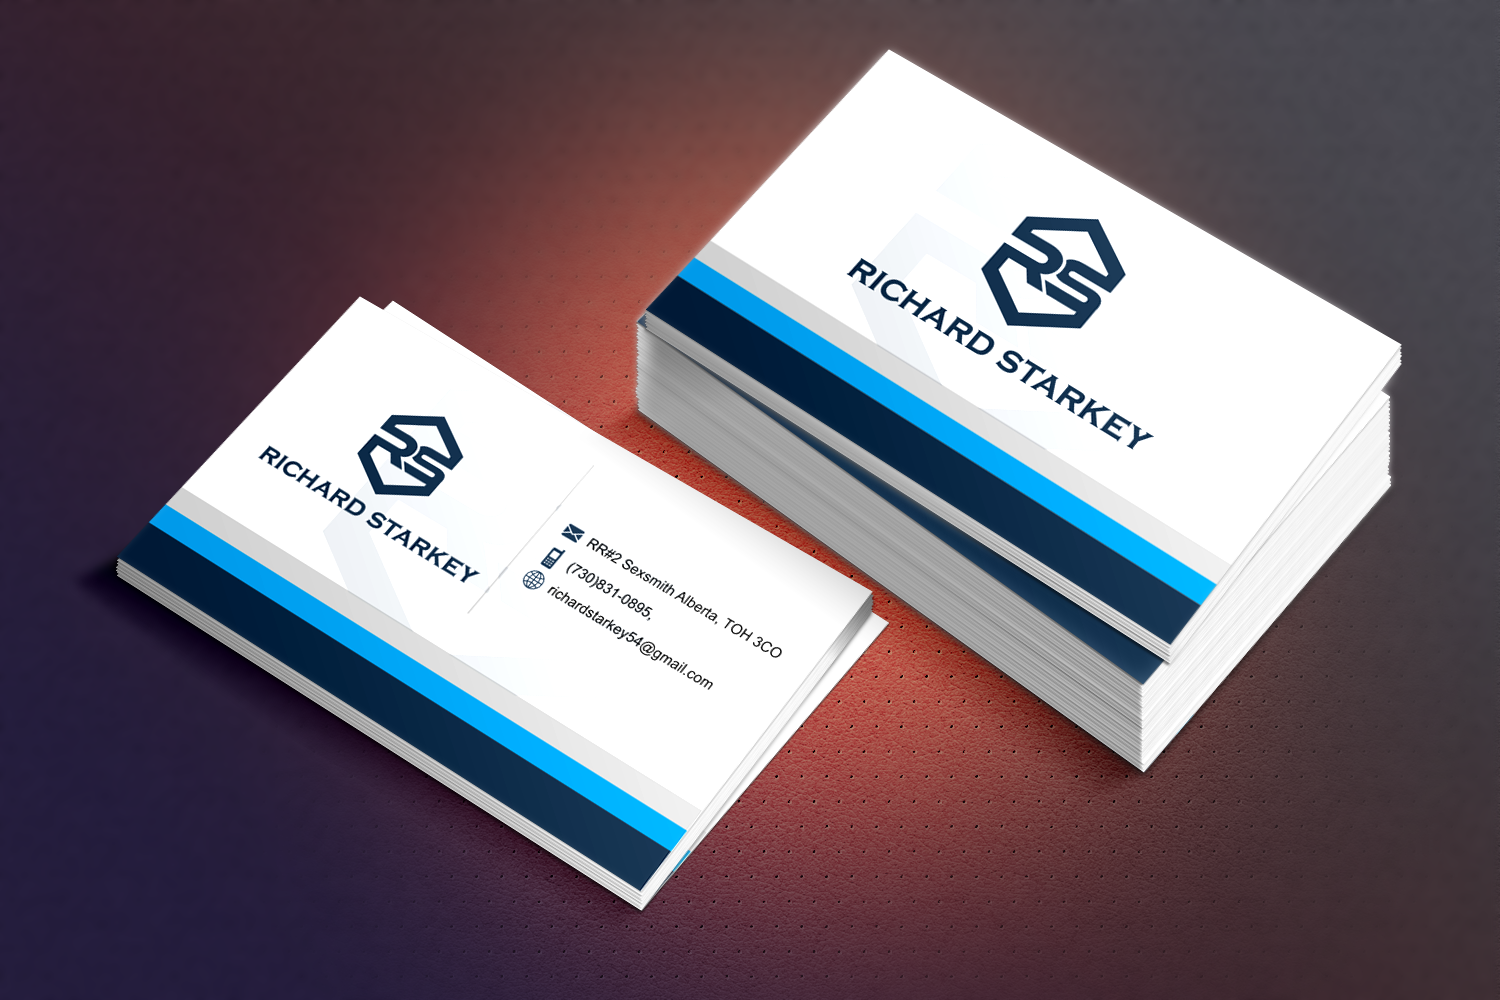 Masculine professional oil and gas business card design for business card design by bryansdesign for greypower quality consulting ltd design reheart Images